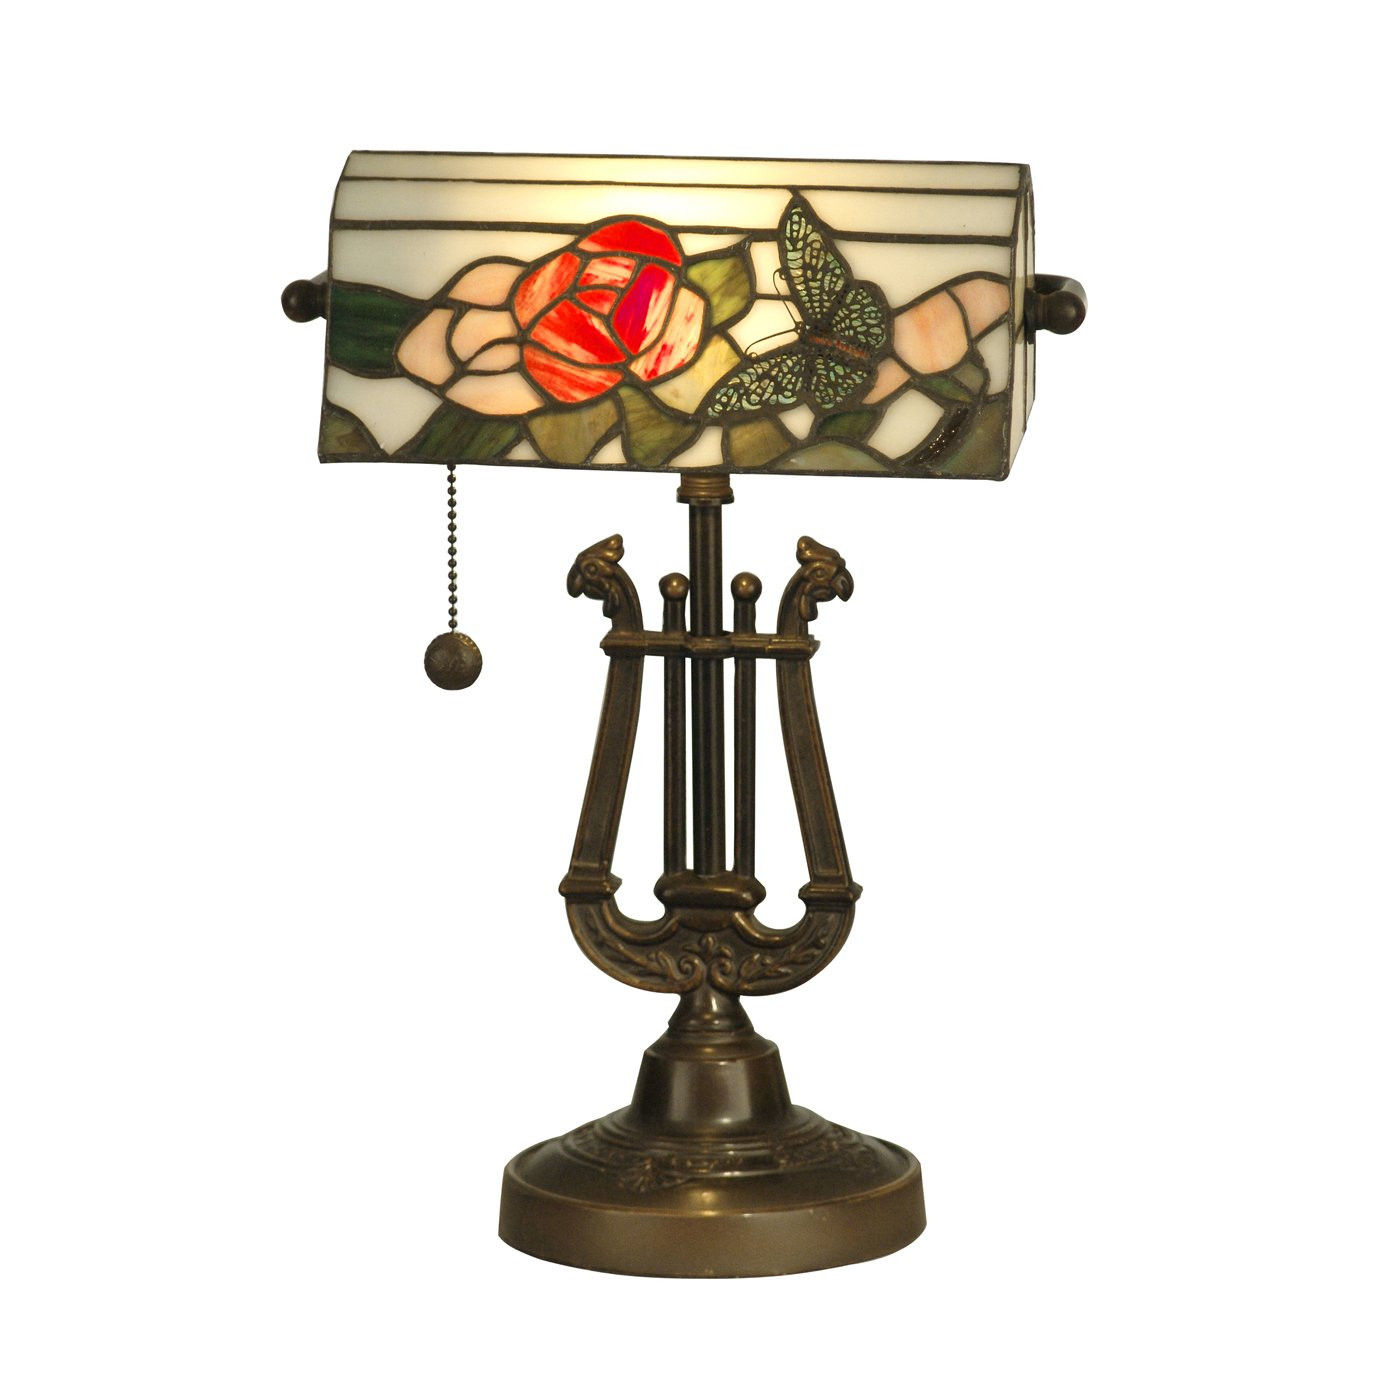 Best ideas about Antique Desk Lamp . Save or Pin Dale Tiffany TT Broadview Table Desk Lamp Antique Now.